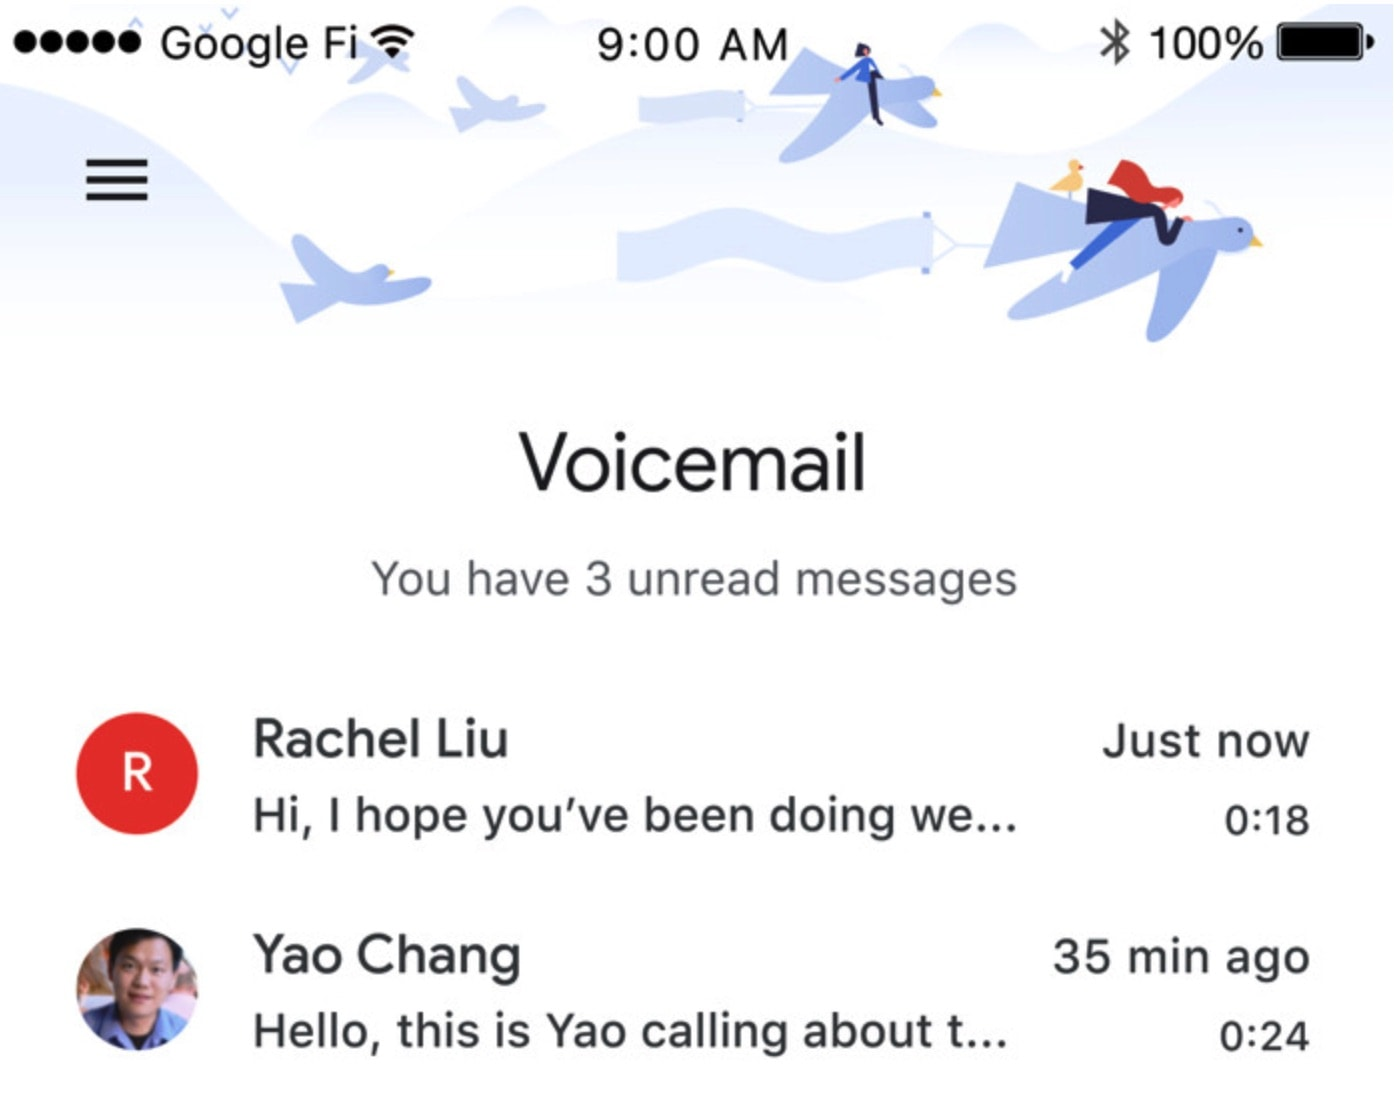 Google's Wireless Phone Service Adds Visual Voicemail for iOS